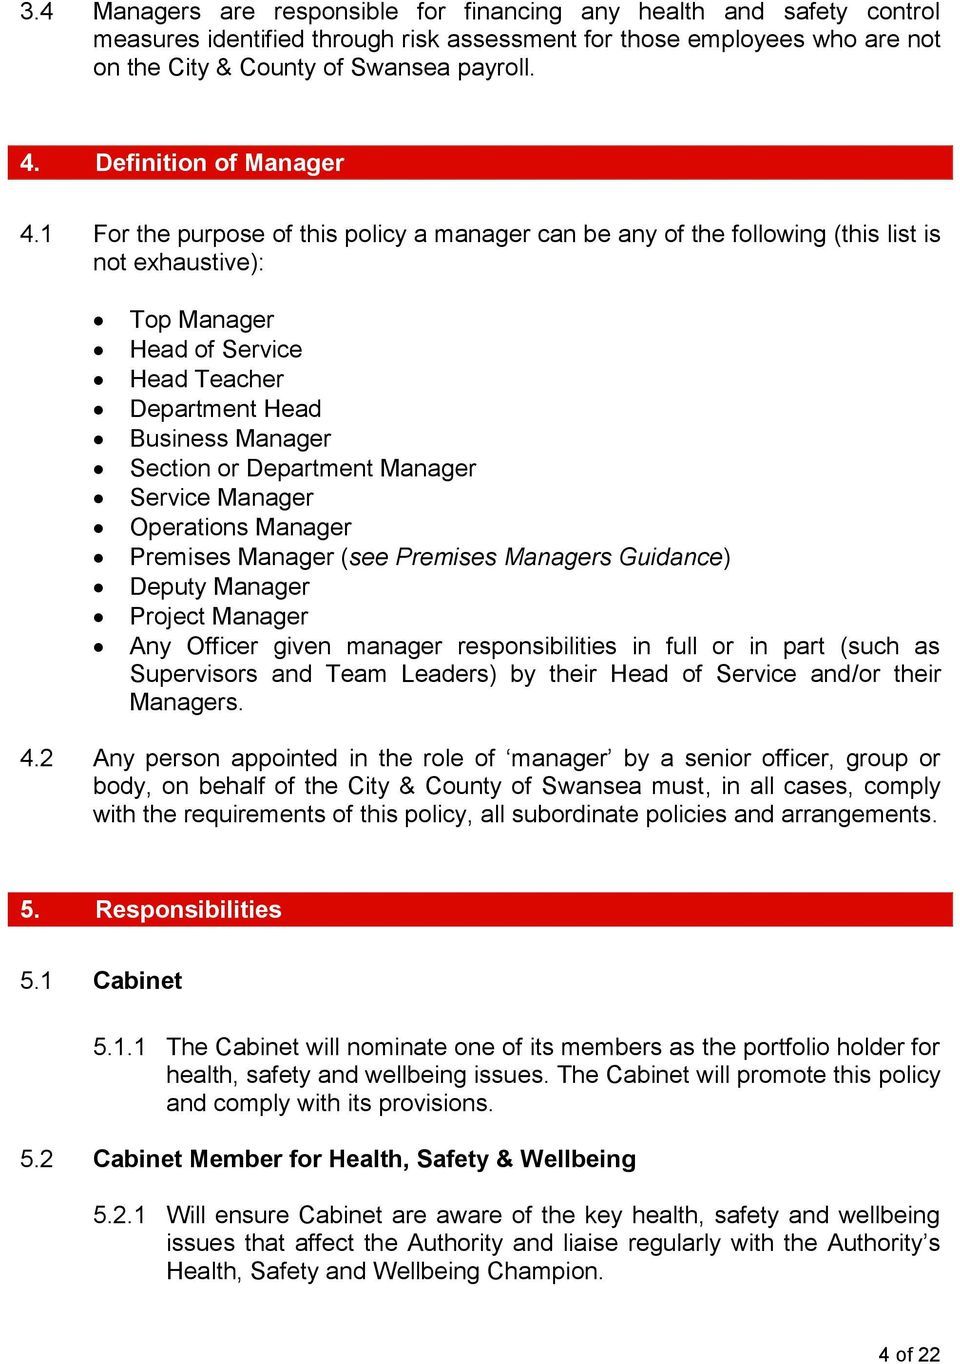 1 For the purpose of this policy a manager can be any of the following (this list is not exhaustive): Top Manager Head of Service Head Teacher Department Head Business Manager Section or Department